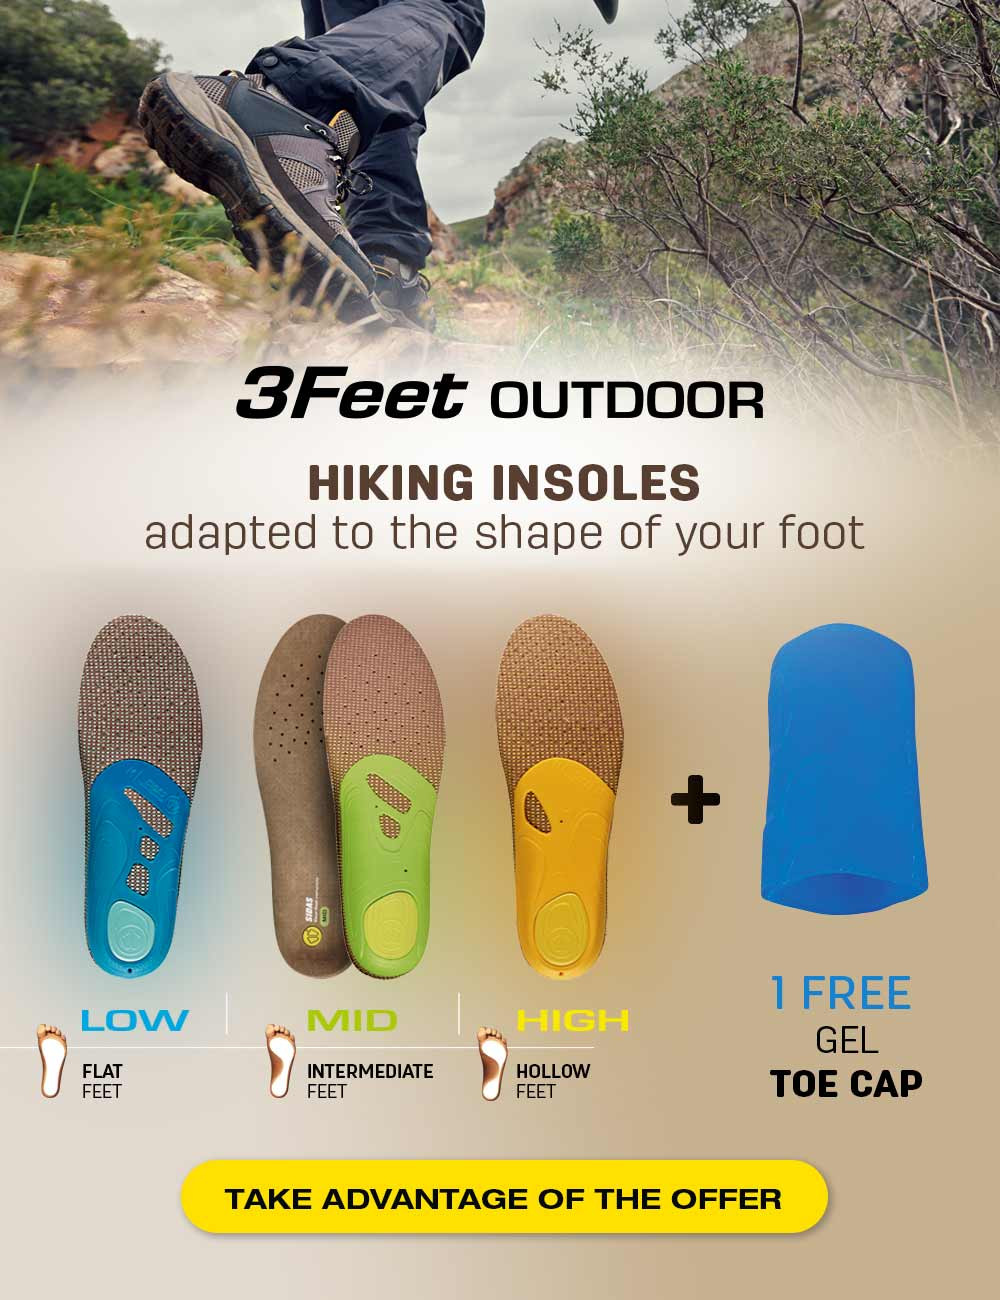 Discover our 3Feet Outdoor insoles ! Buy one pair of outdoor insoles and get your free Gel Toe Cap.